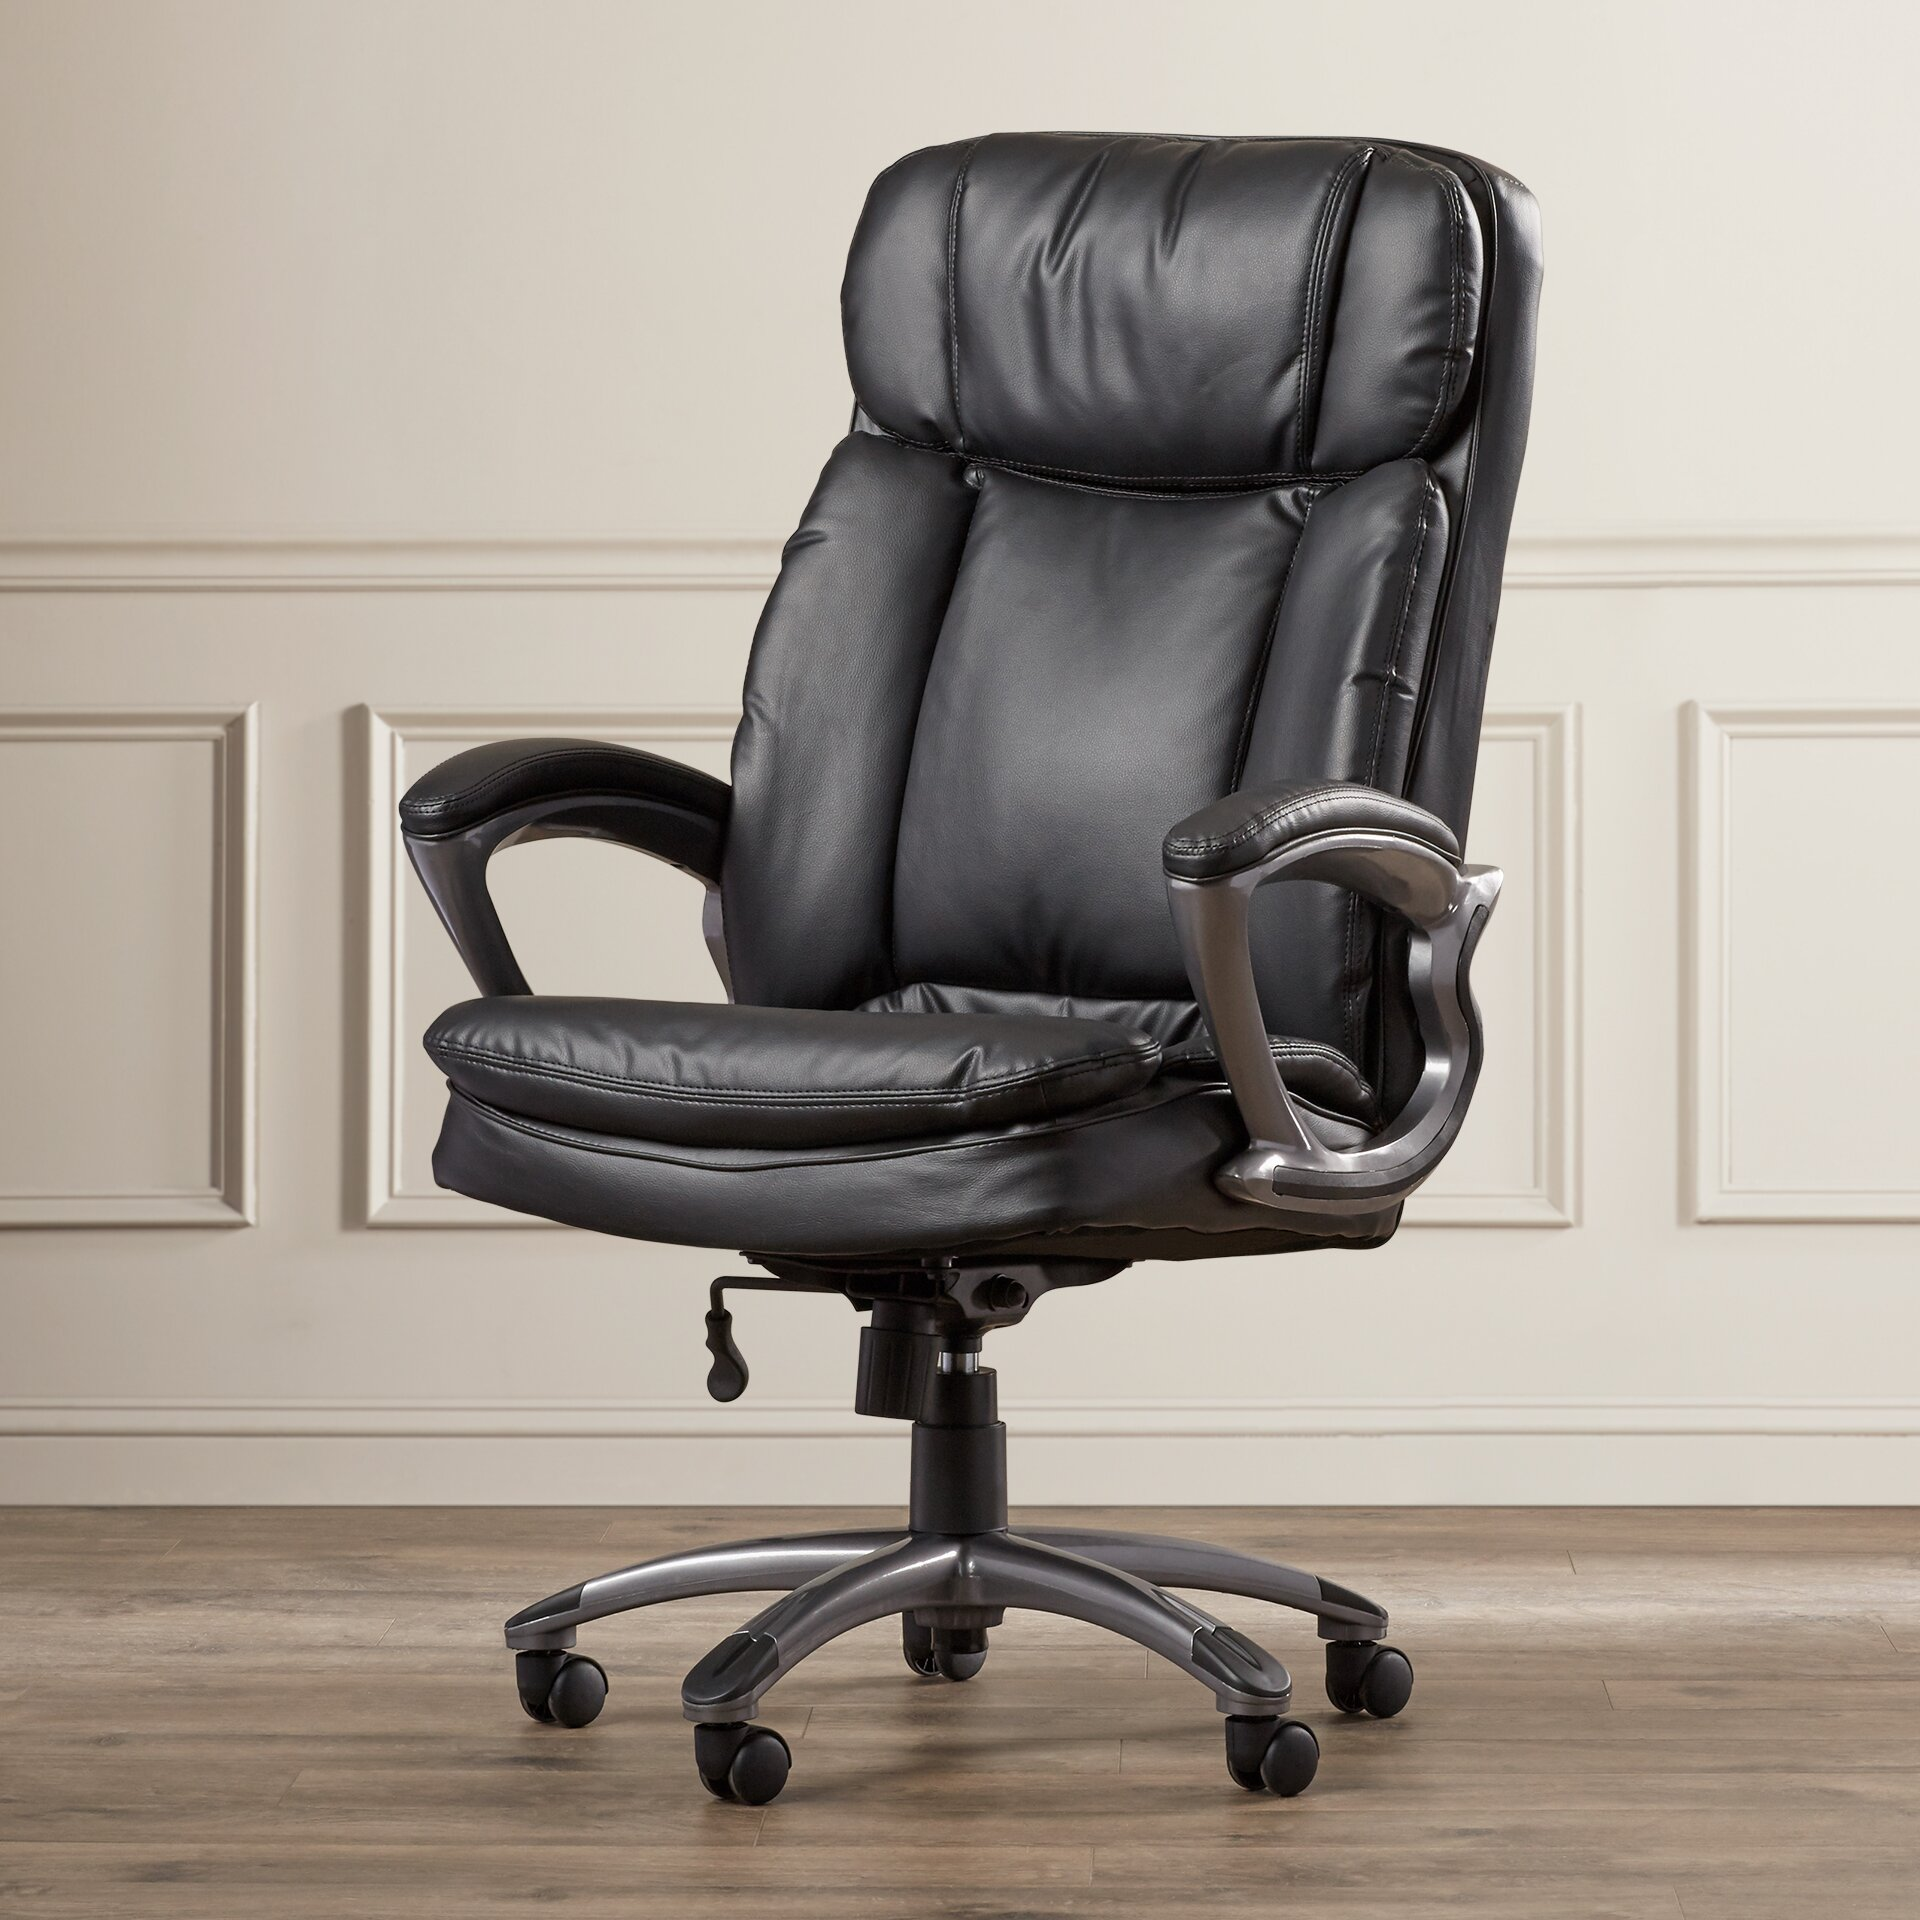 Serta at Home Big and Tall High-Back Leather Executive ...